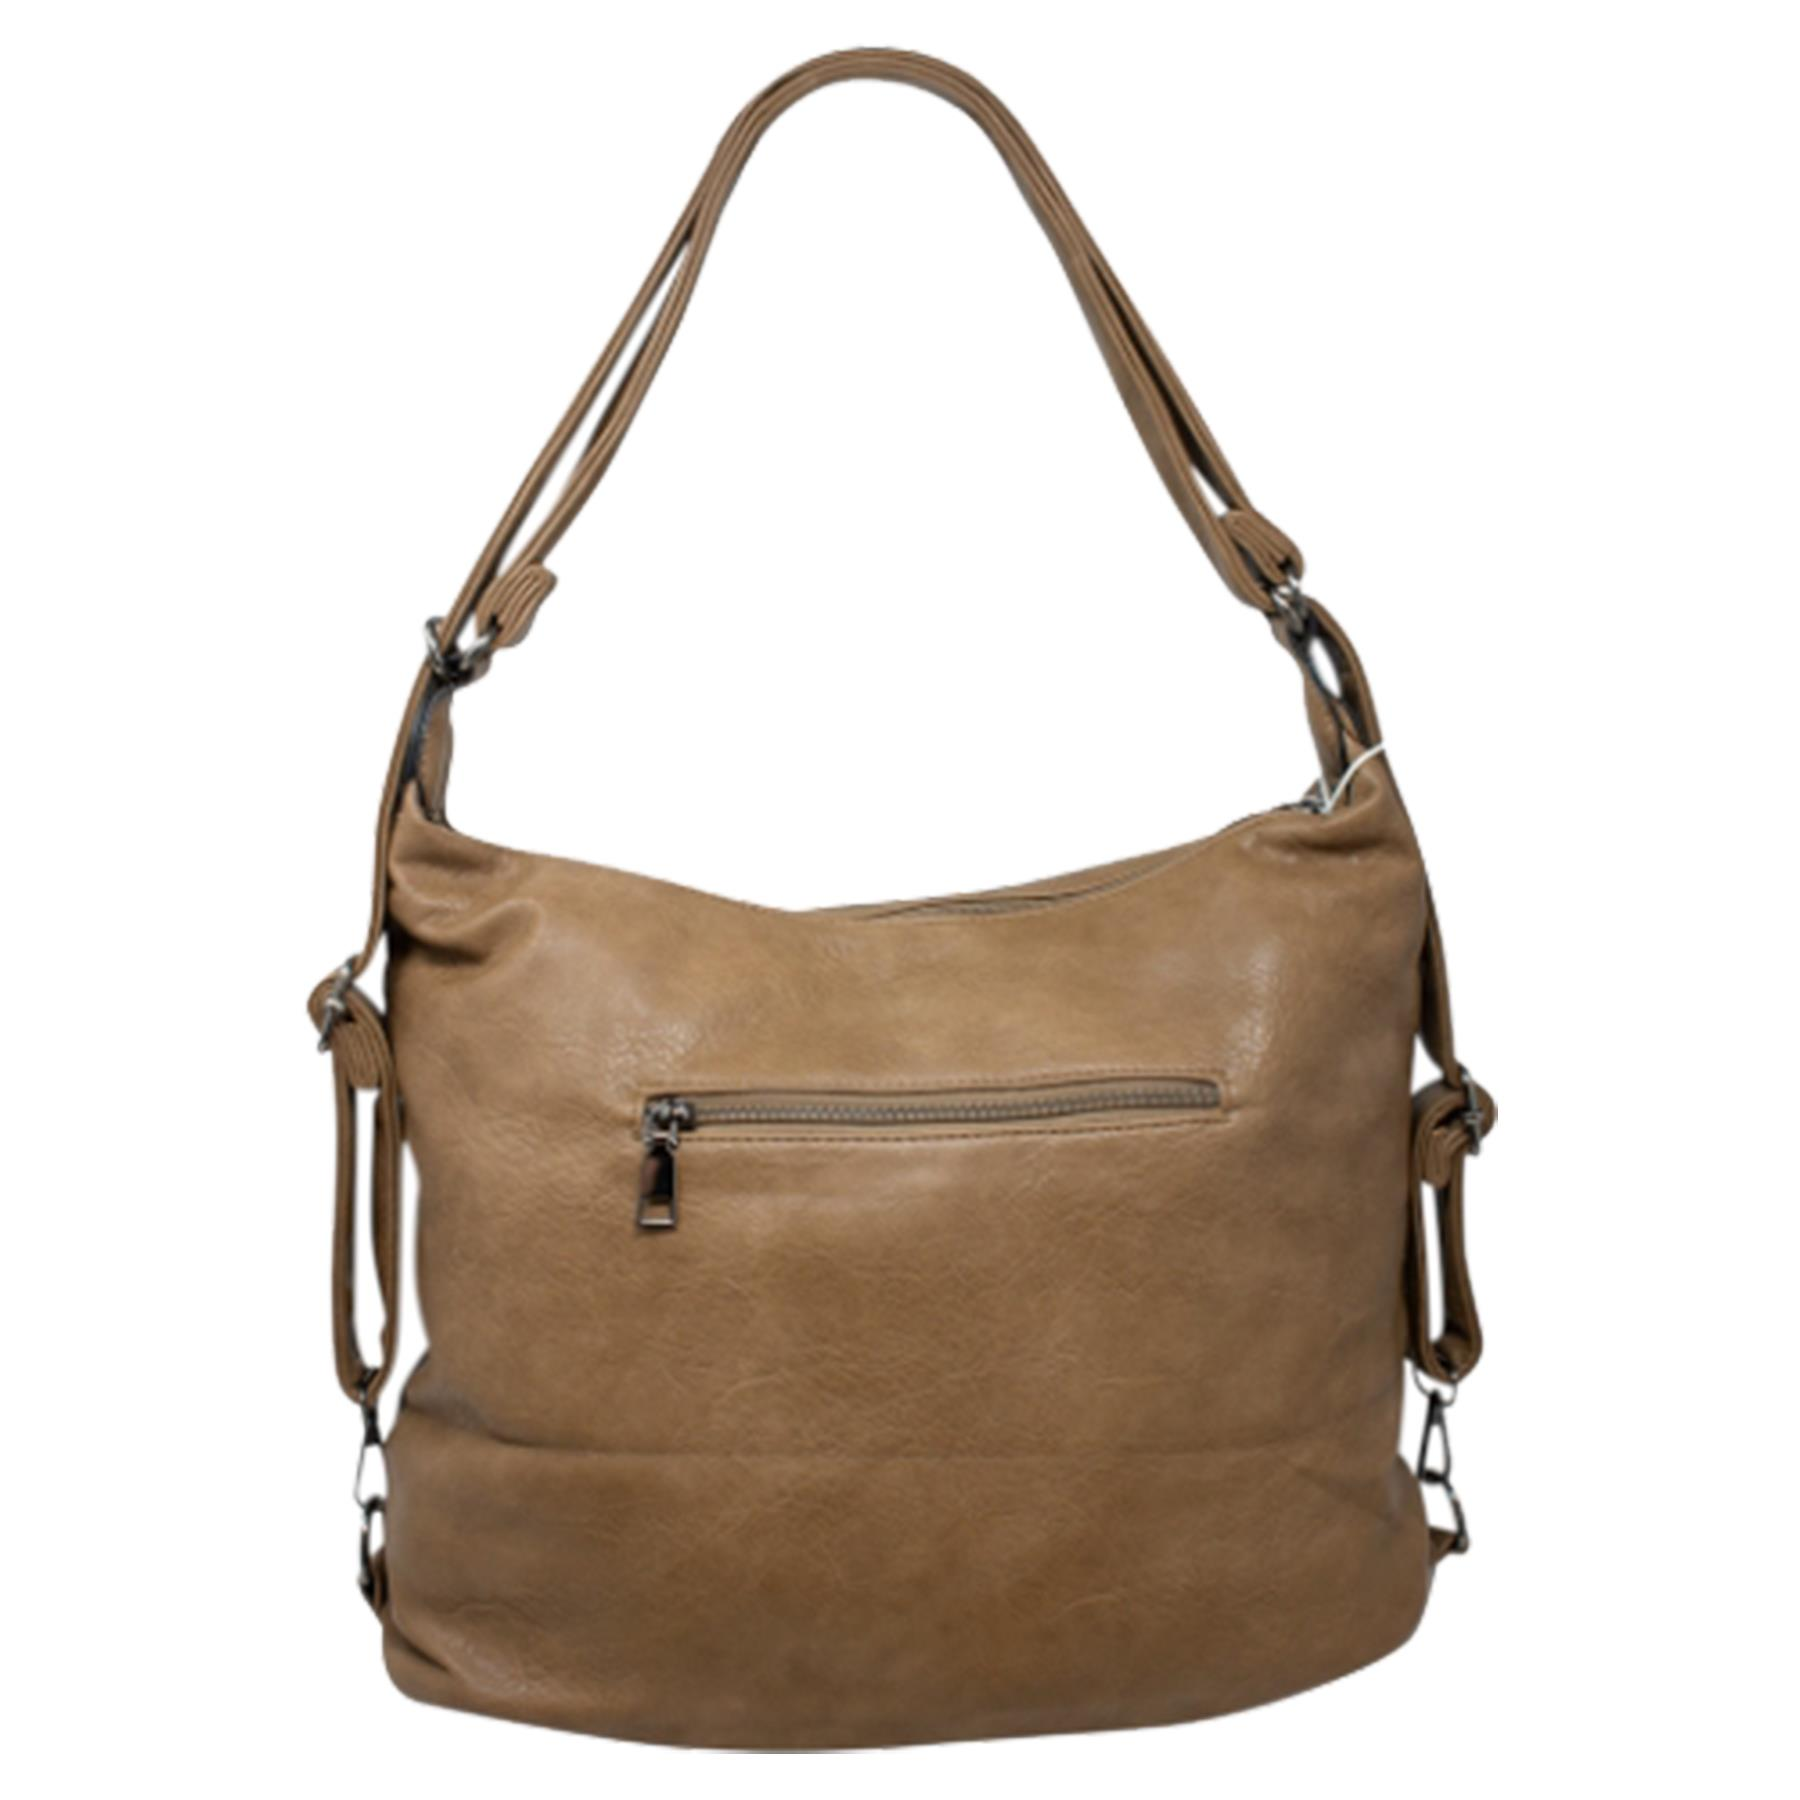 New-Women-s-Men-s-Faux-Leather-Multi-Purpose-Crossbody-Messenger-Bag thumbnail 28